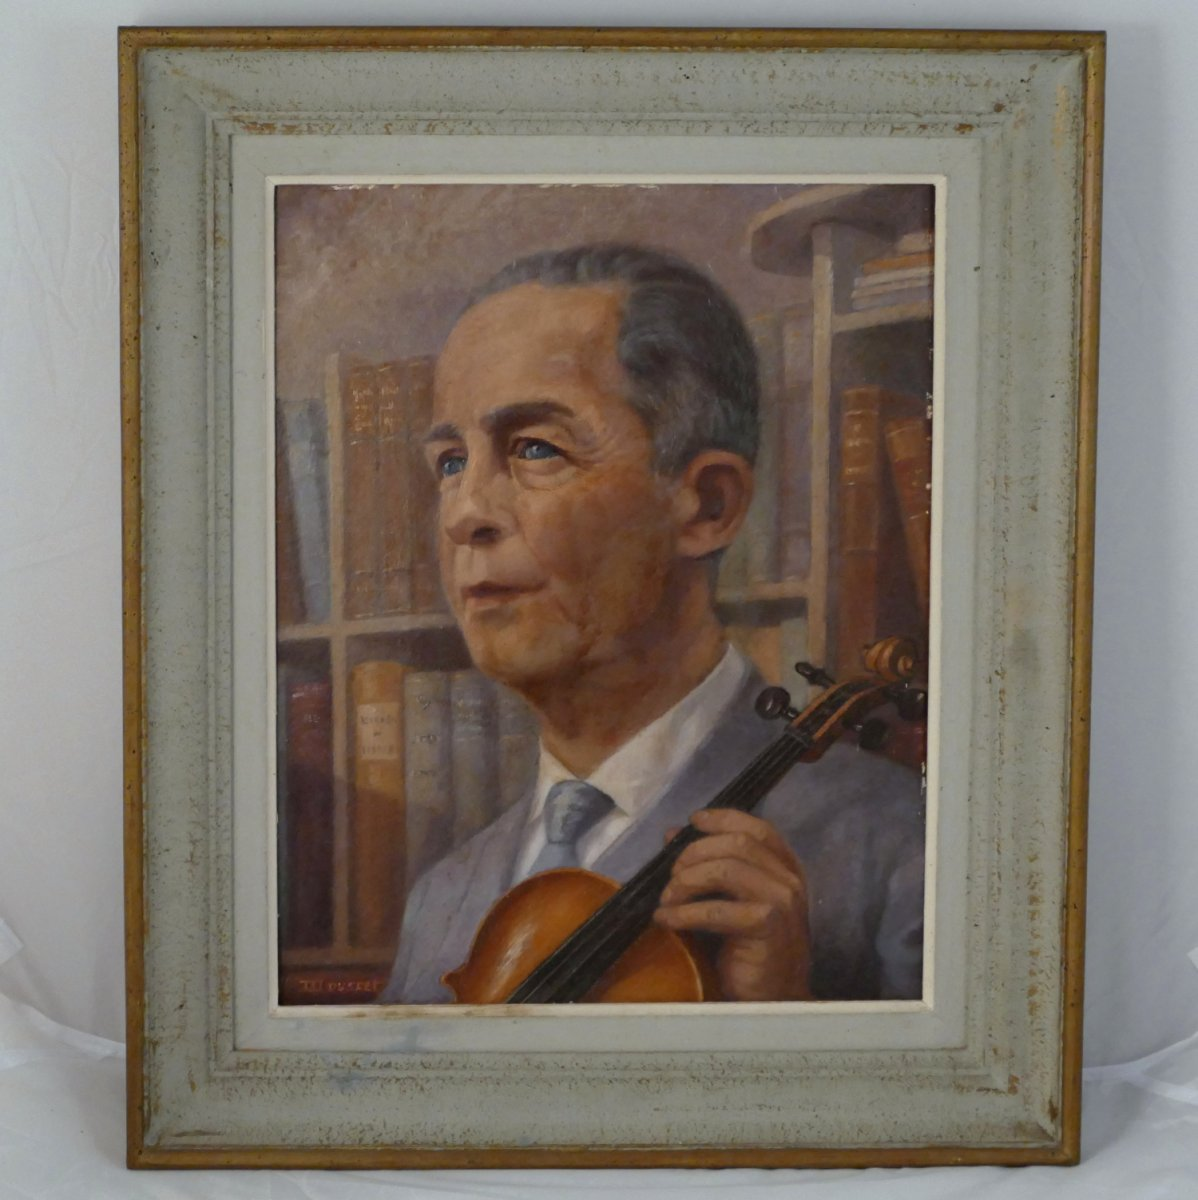 Portrait Of Man With Violin In His Library, Oil 1950 By Henri Dousset.